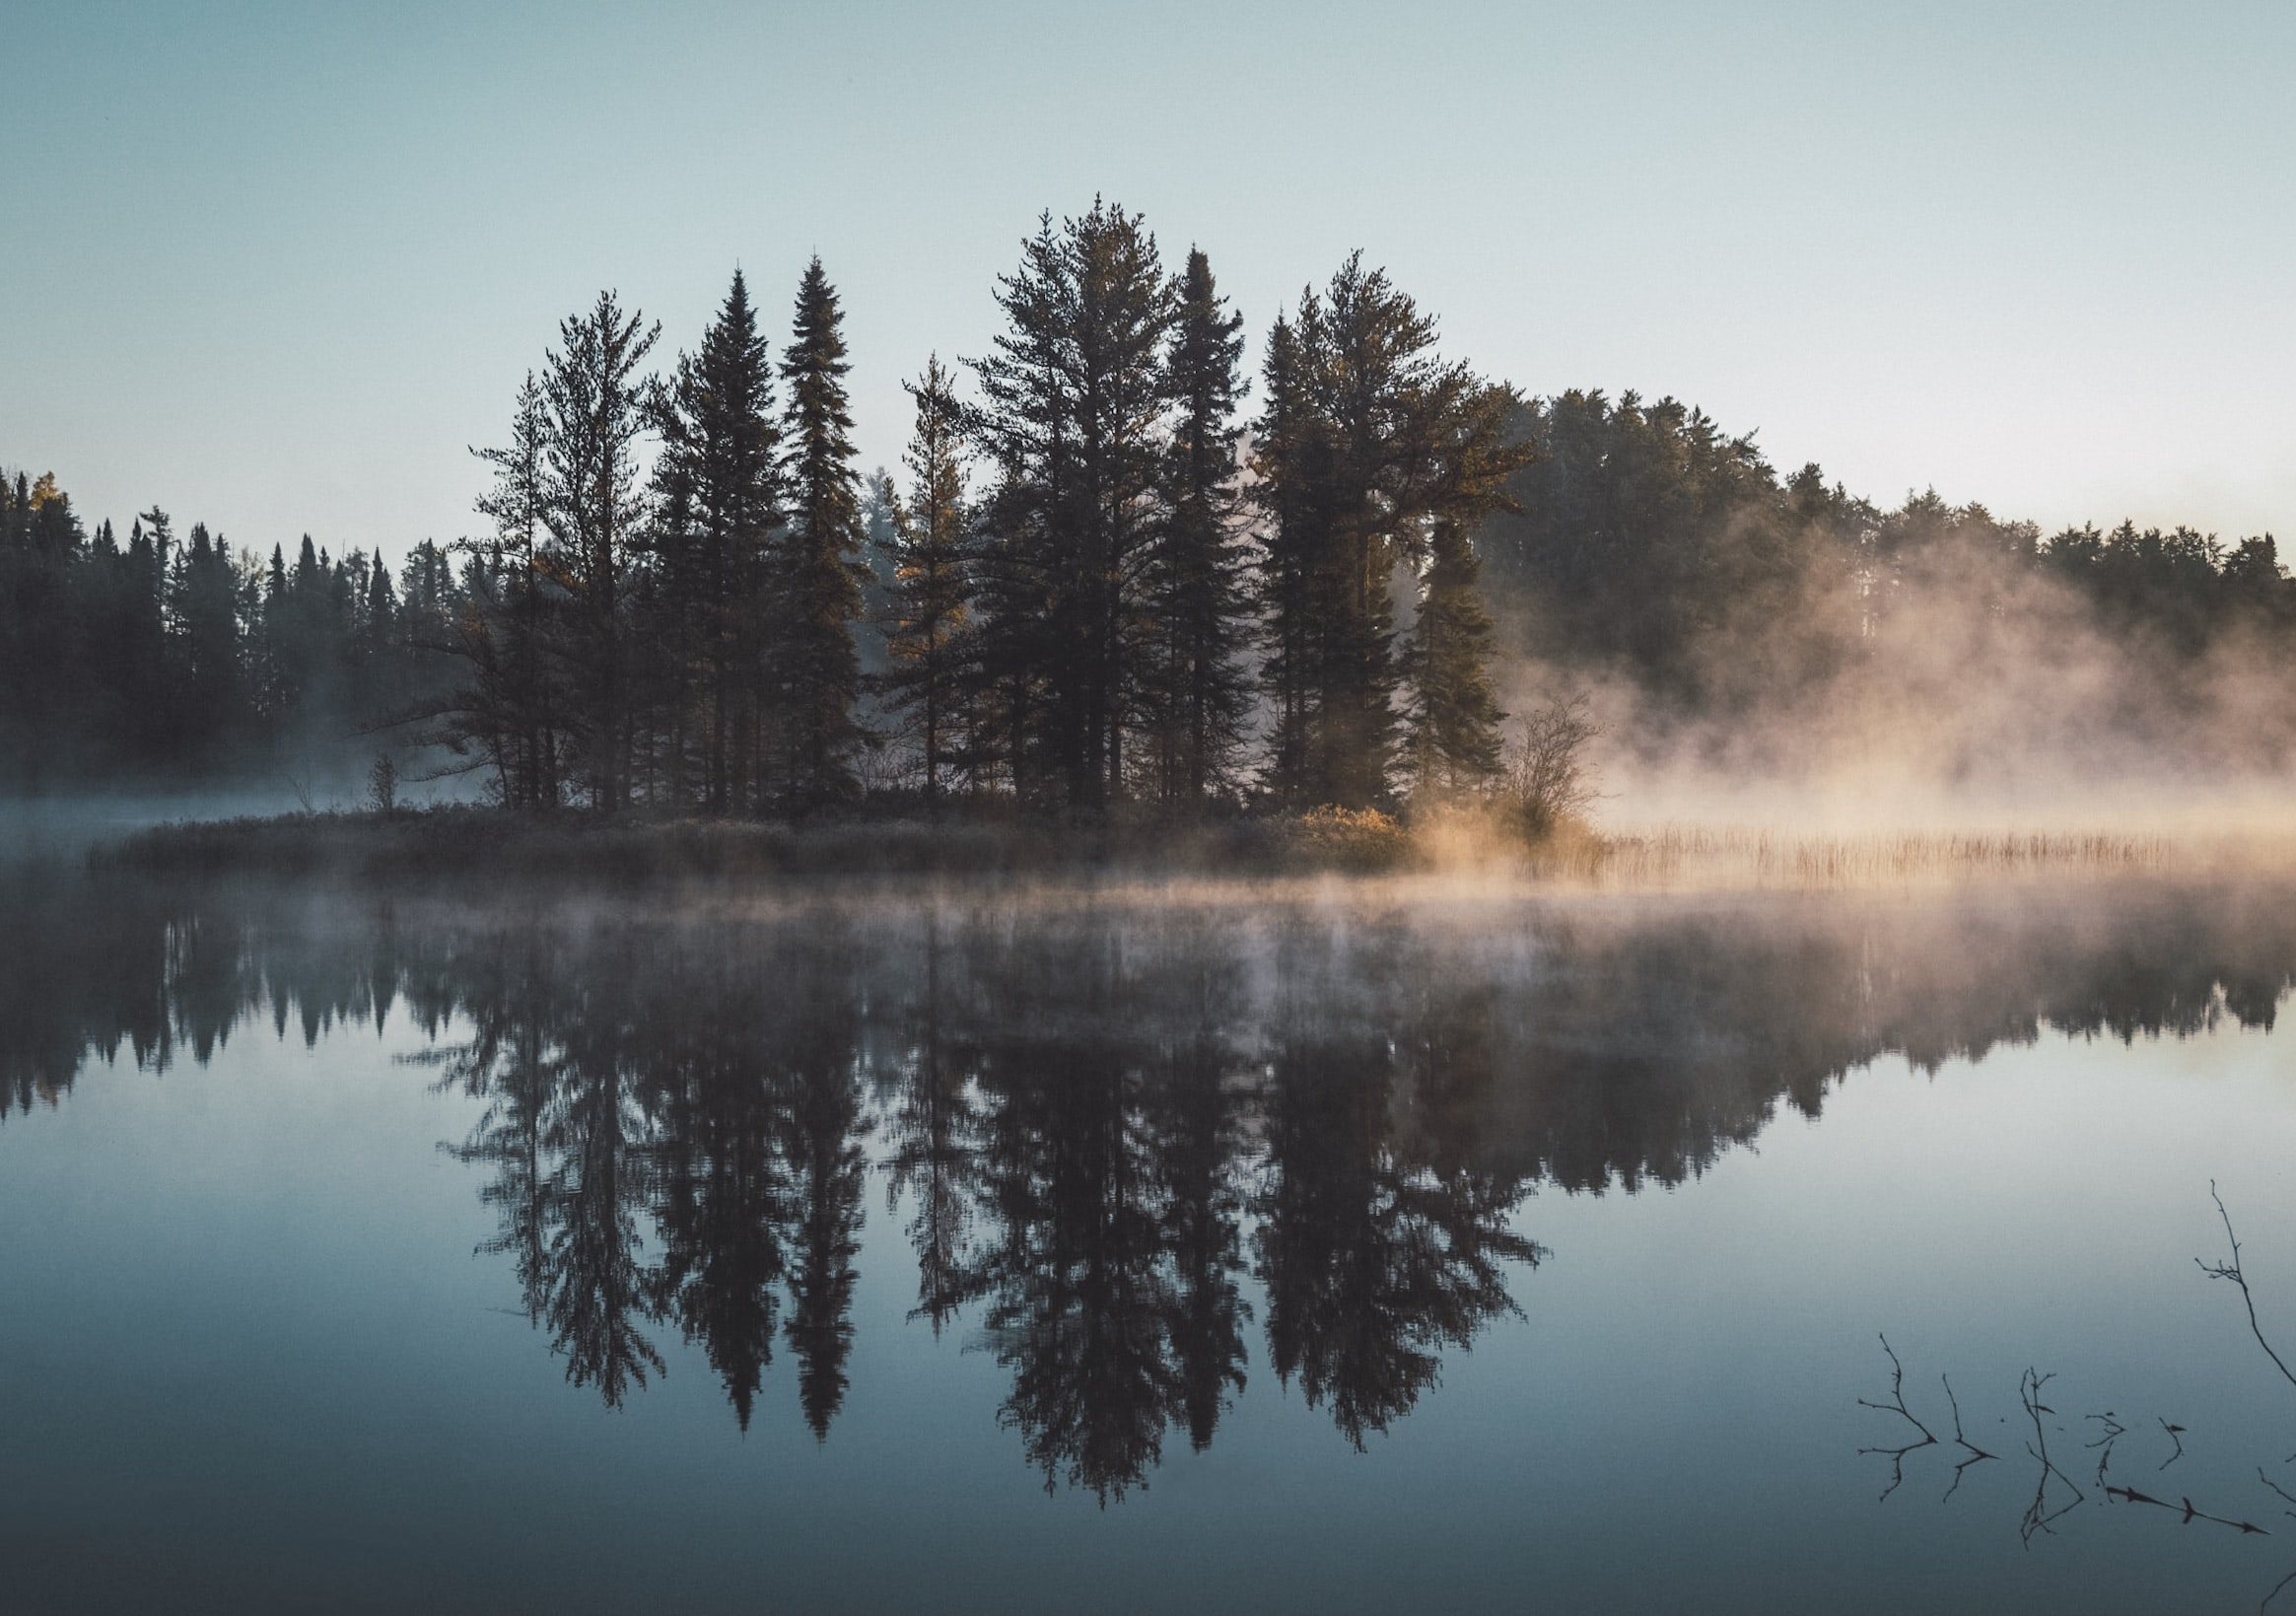 The reflection of Evergreen trees in the lake on a foggy day